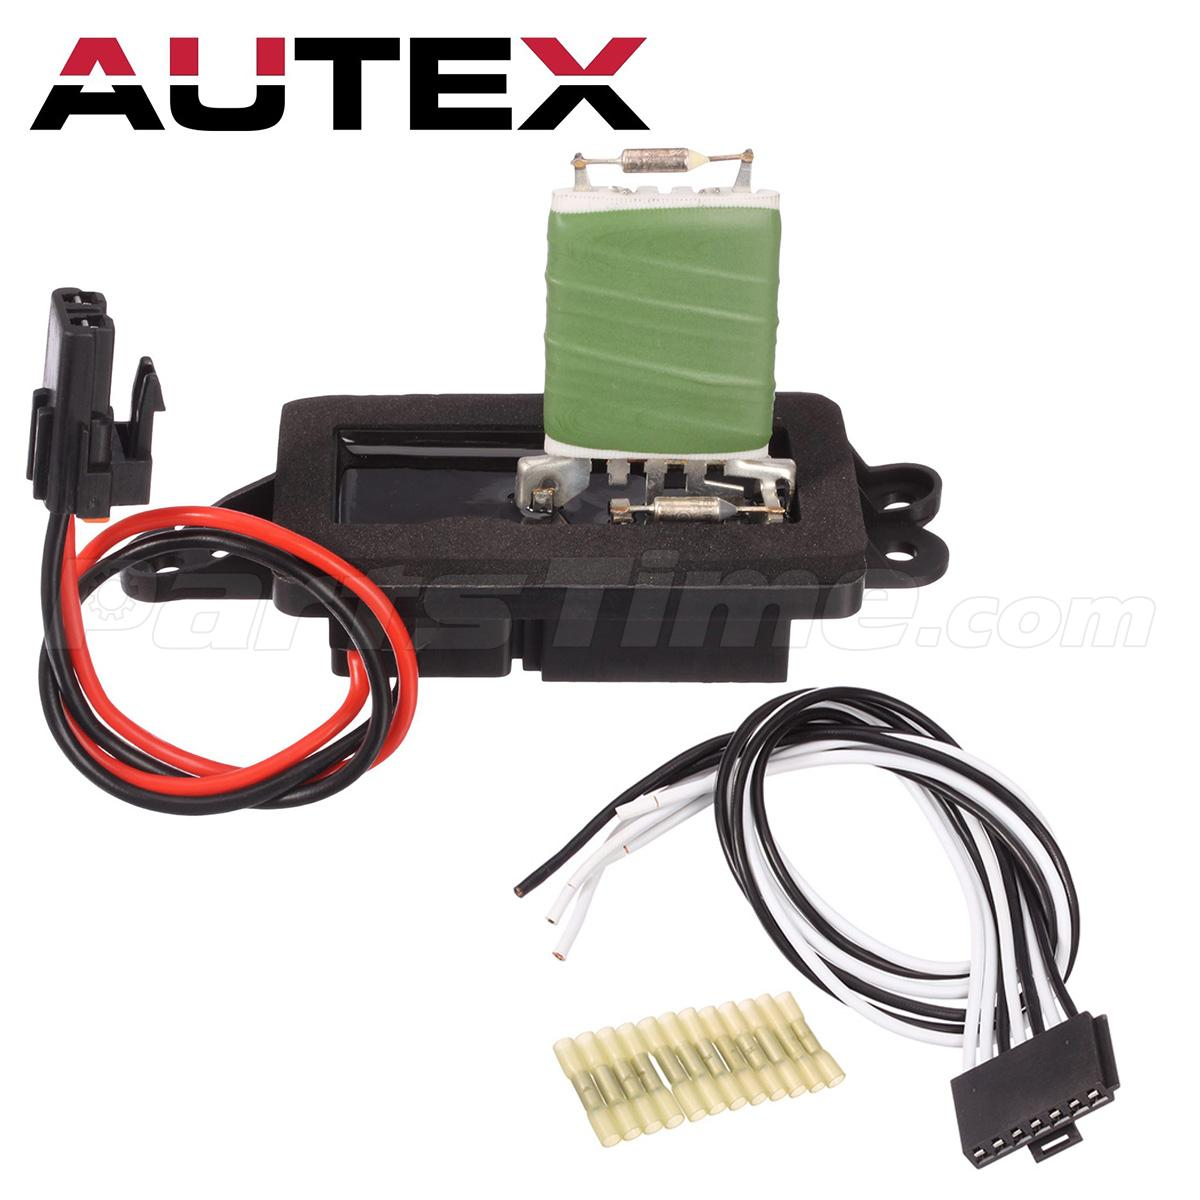 7 wire blower motor resistor harness 2000 dodge neon alternator wiring diagram heater w for